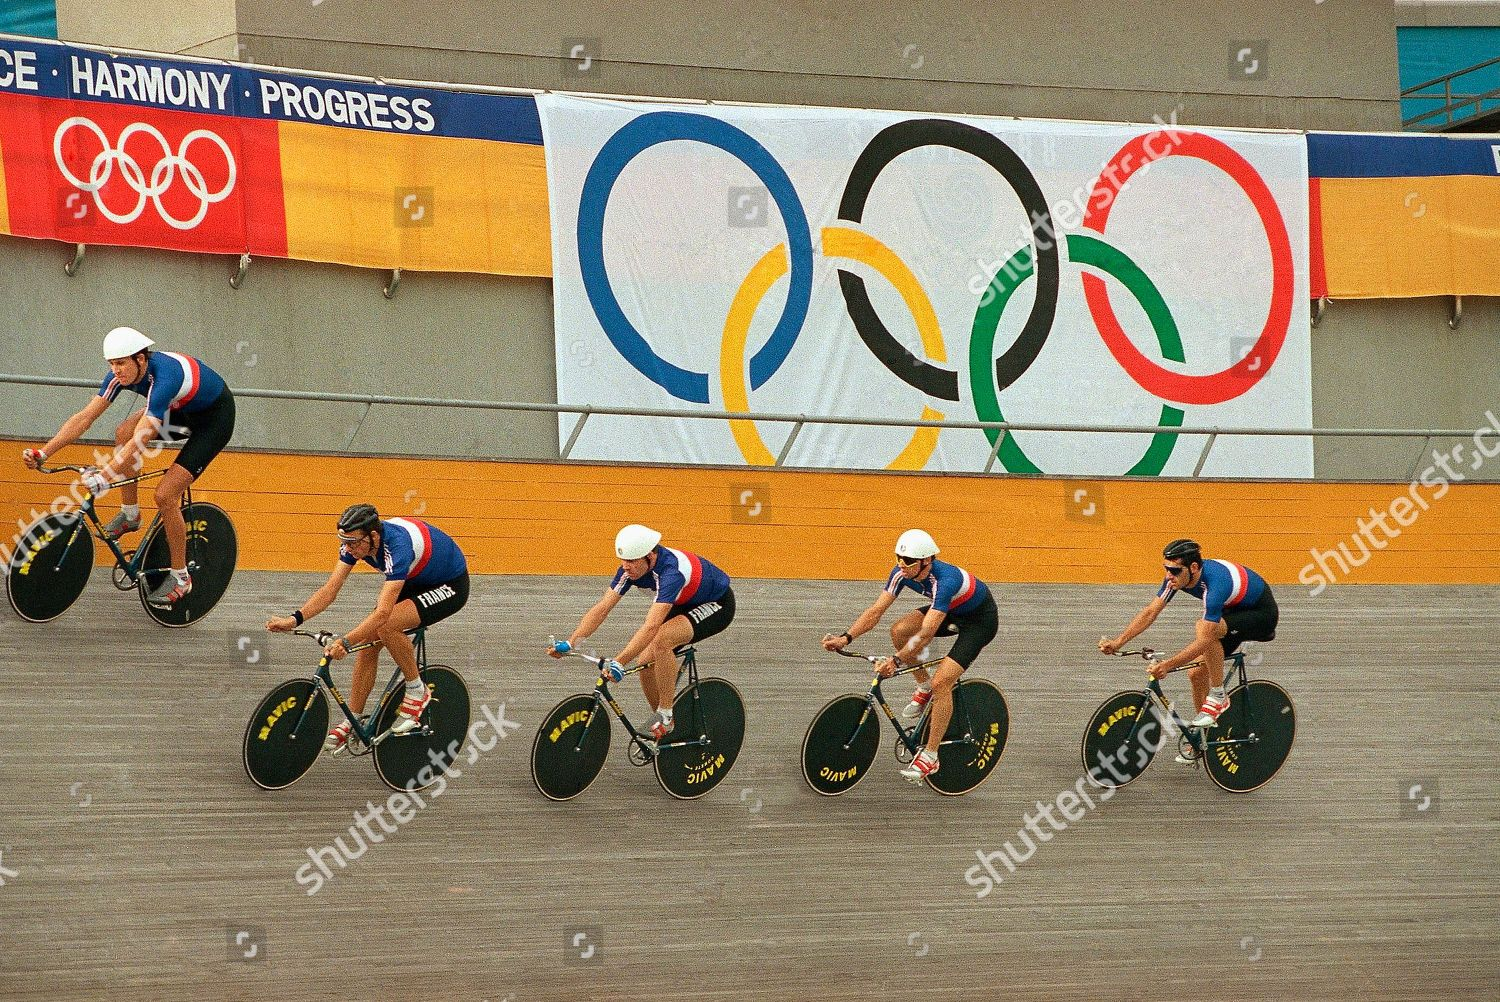 1988-summer-olympics-seoul-south-korea-shutterstock-editorial-7318433a.jpg